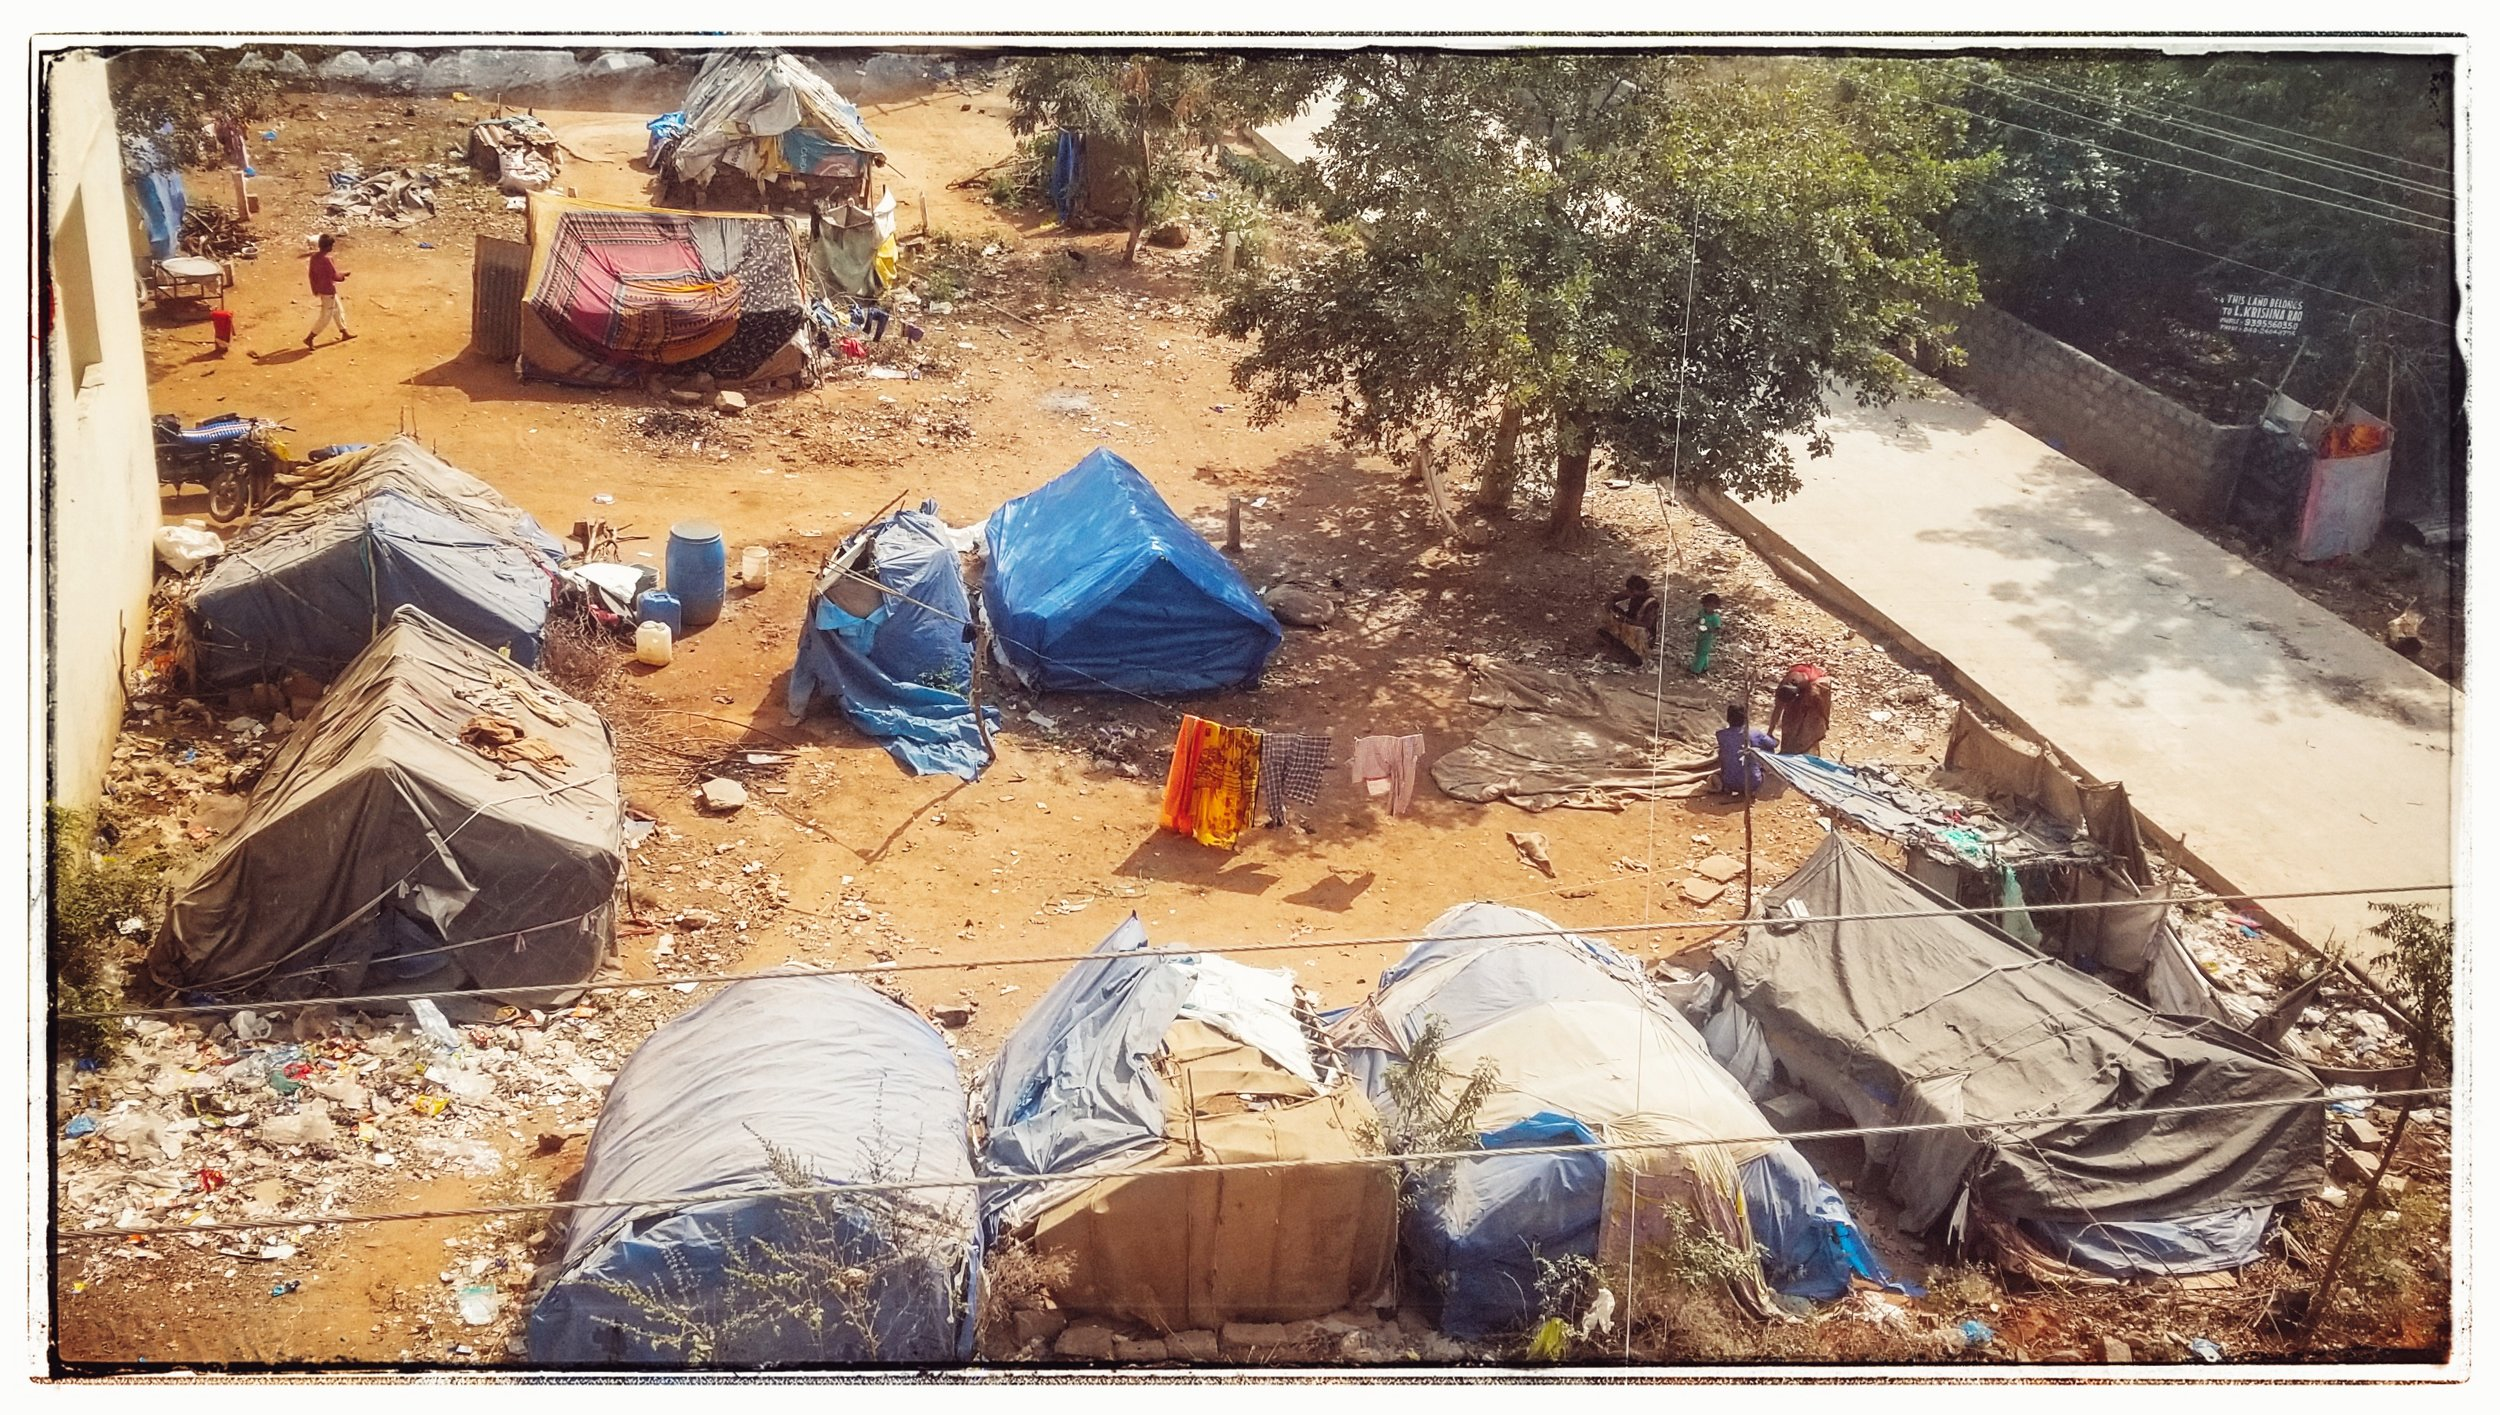 Despite the high tech, untouchable camps are prevalent. It's estimated that 10% or more of the population are in this demographic.